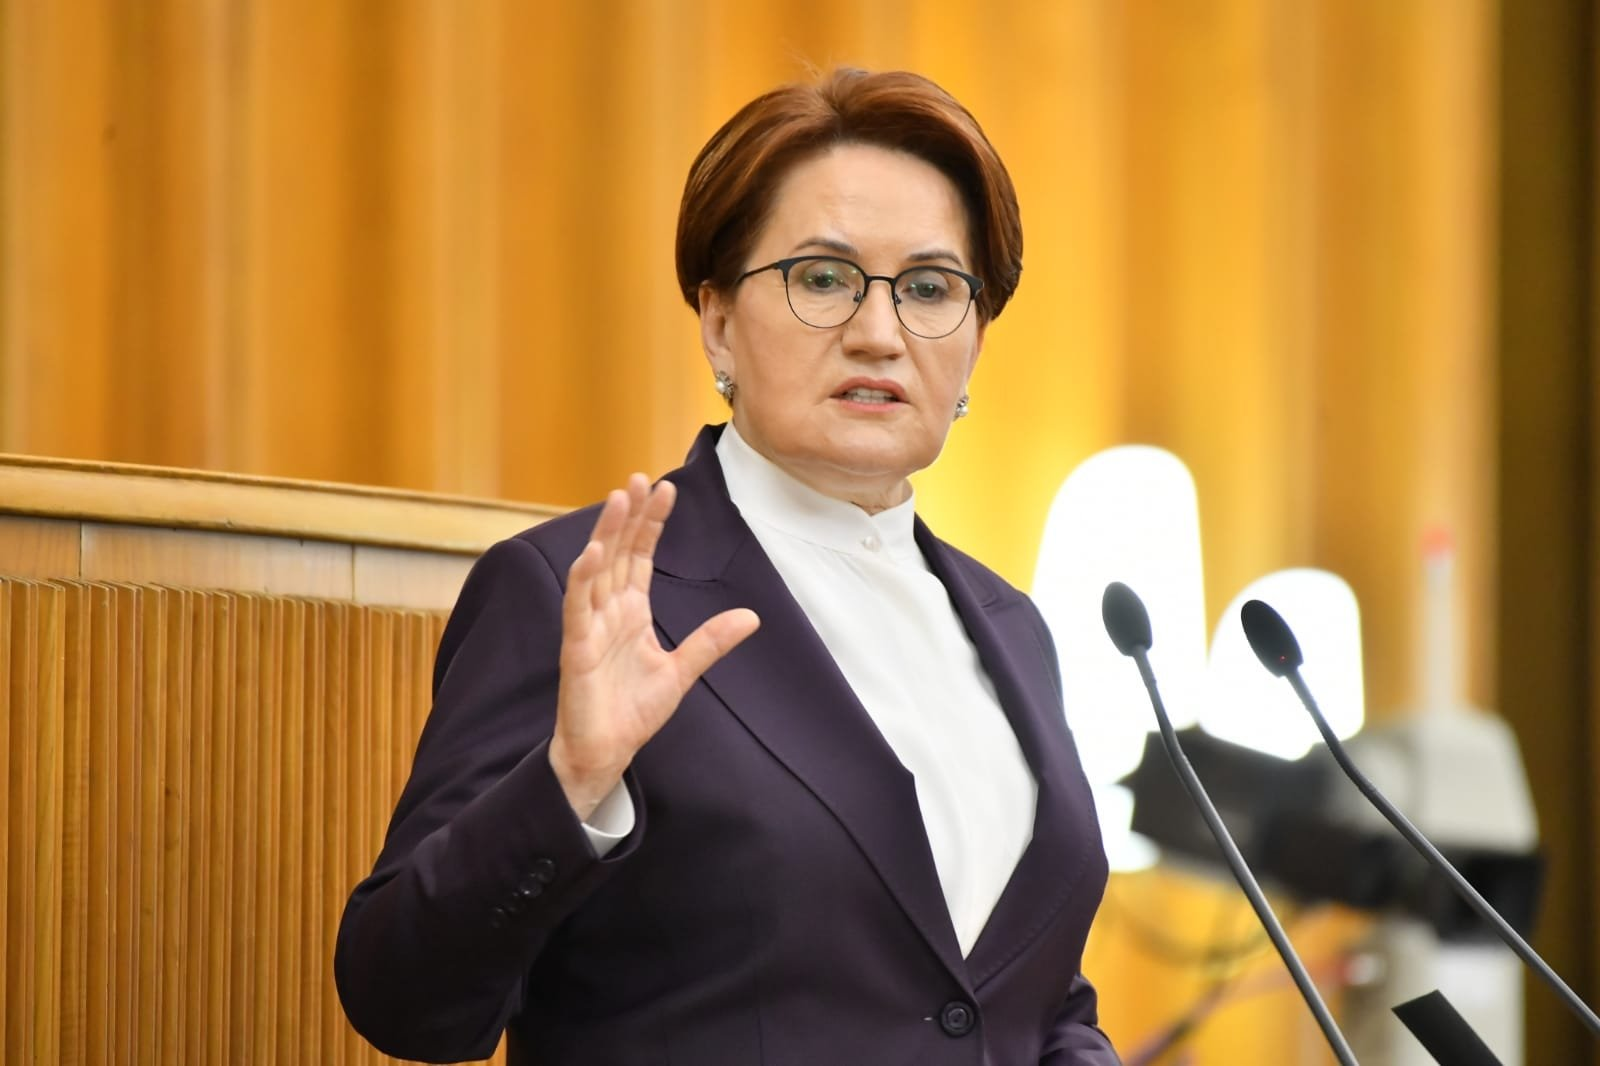 Good Party (IP) Chairperson Meral Akşener speaks at Parliament in Ankara, Turkey, April 28, 2021. (DHA Photo)